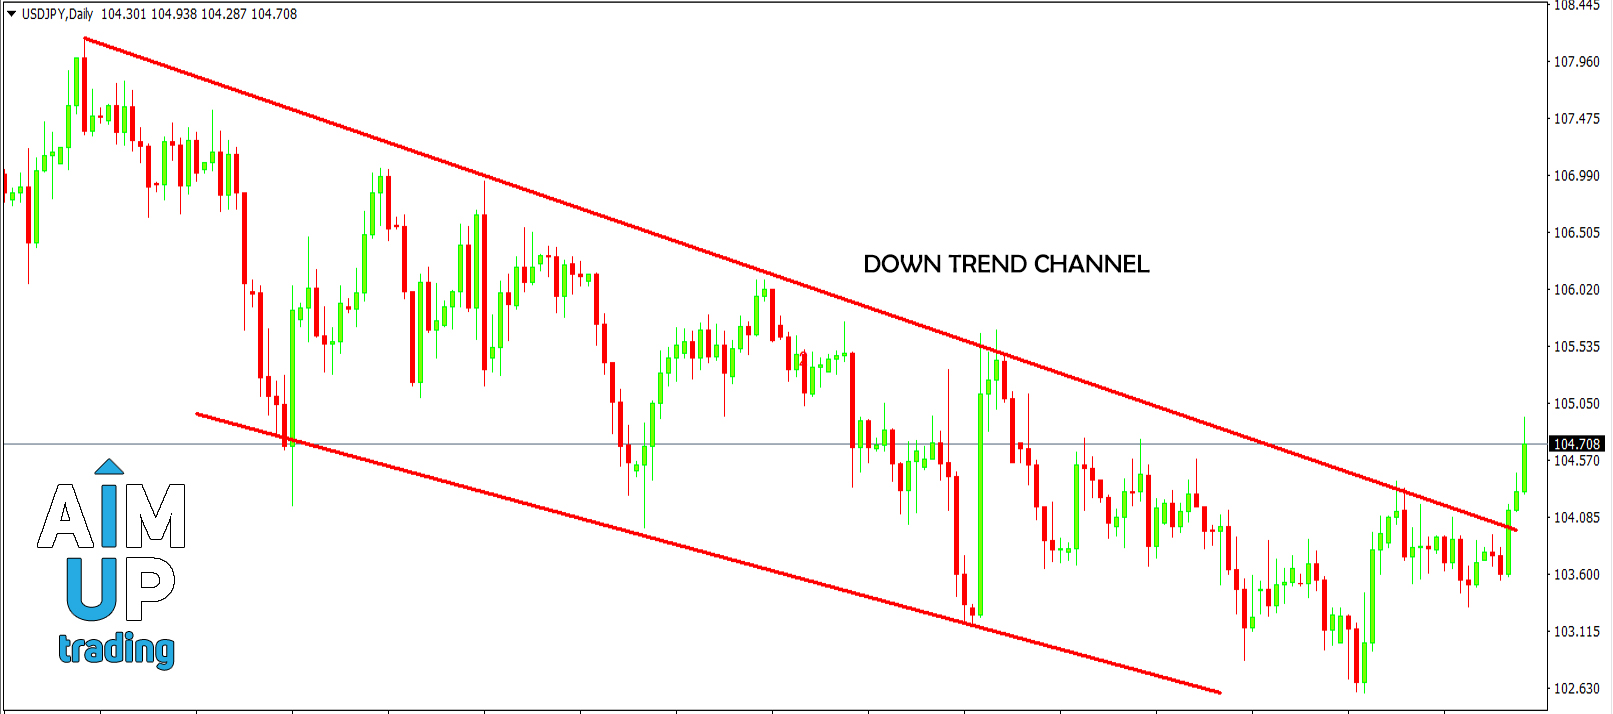 HOW TO TRADE DOWN TREND CHANNEL